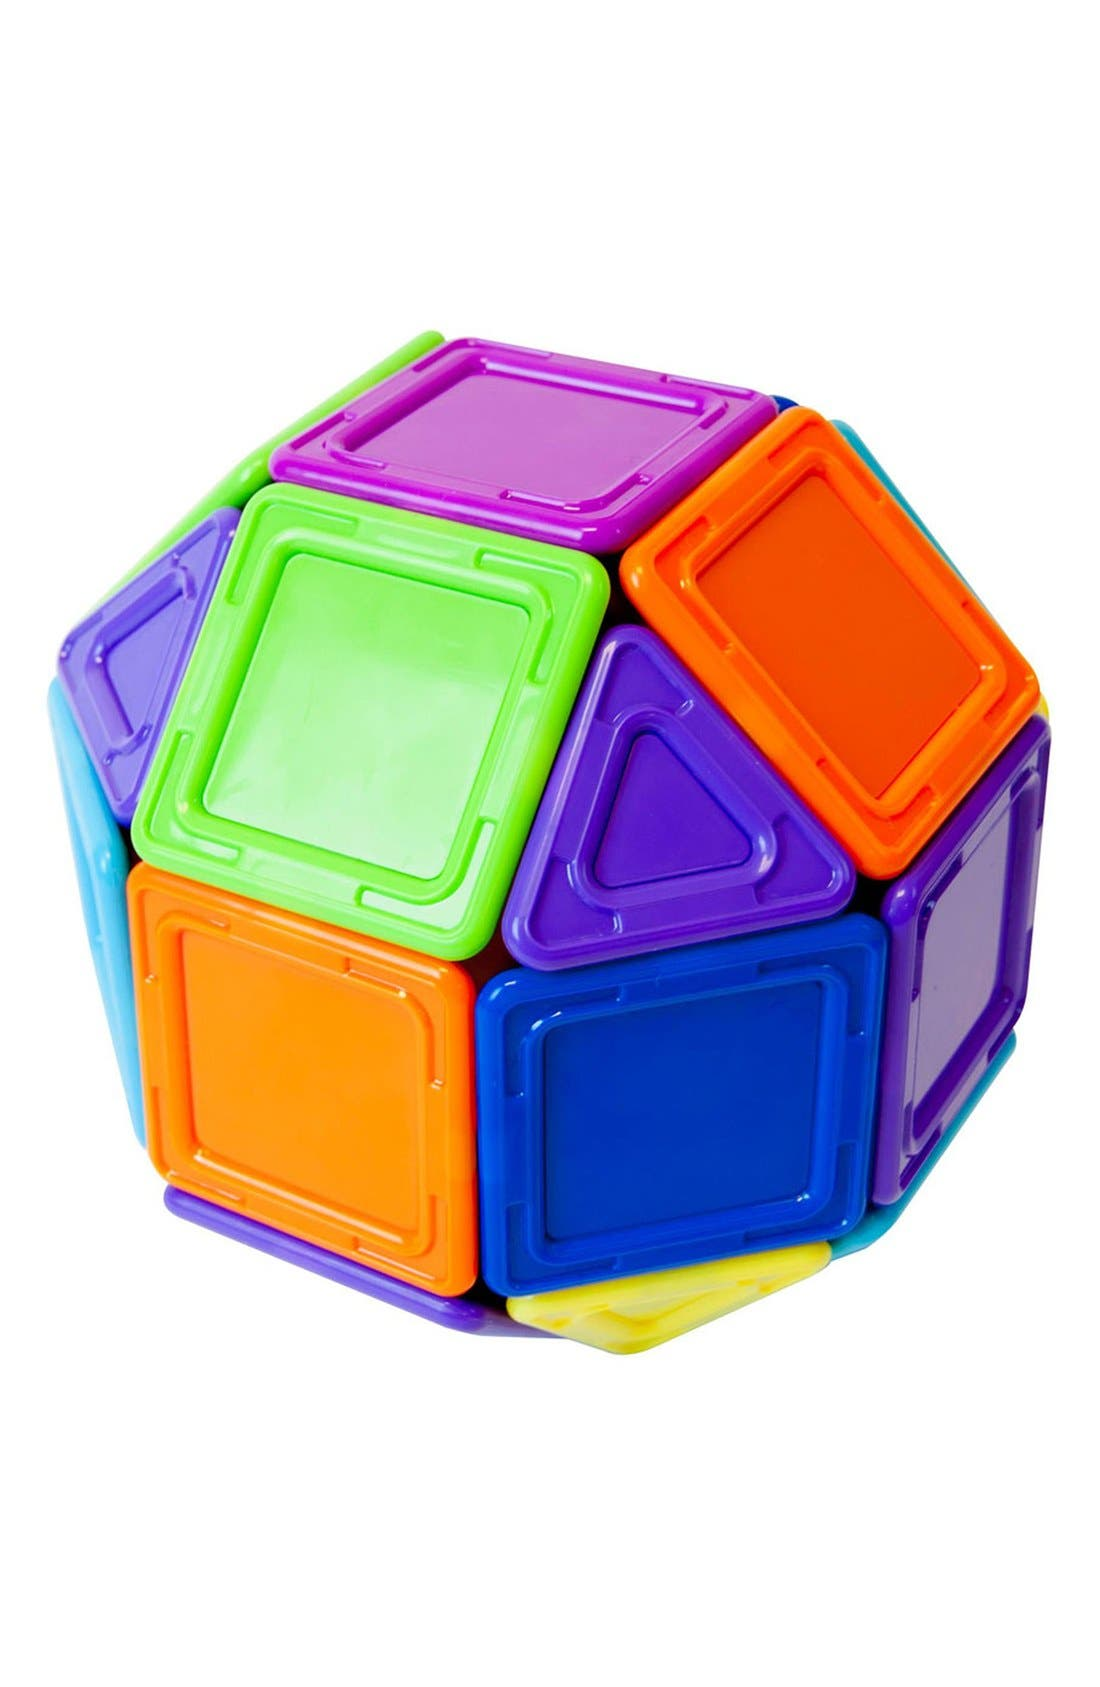 'Standard - Solids' Opaque Magnetic 3D Construction Set,                             Alternate thumbnail 2, color,                             Opaque Rainbow